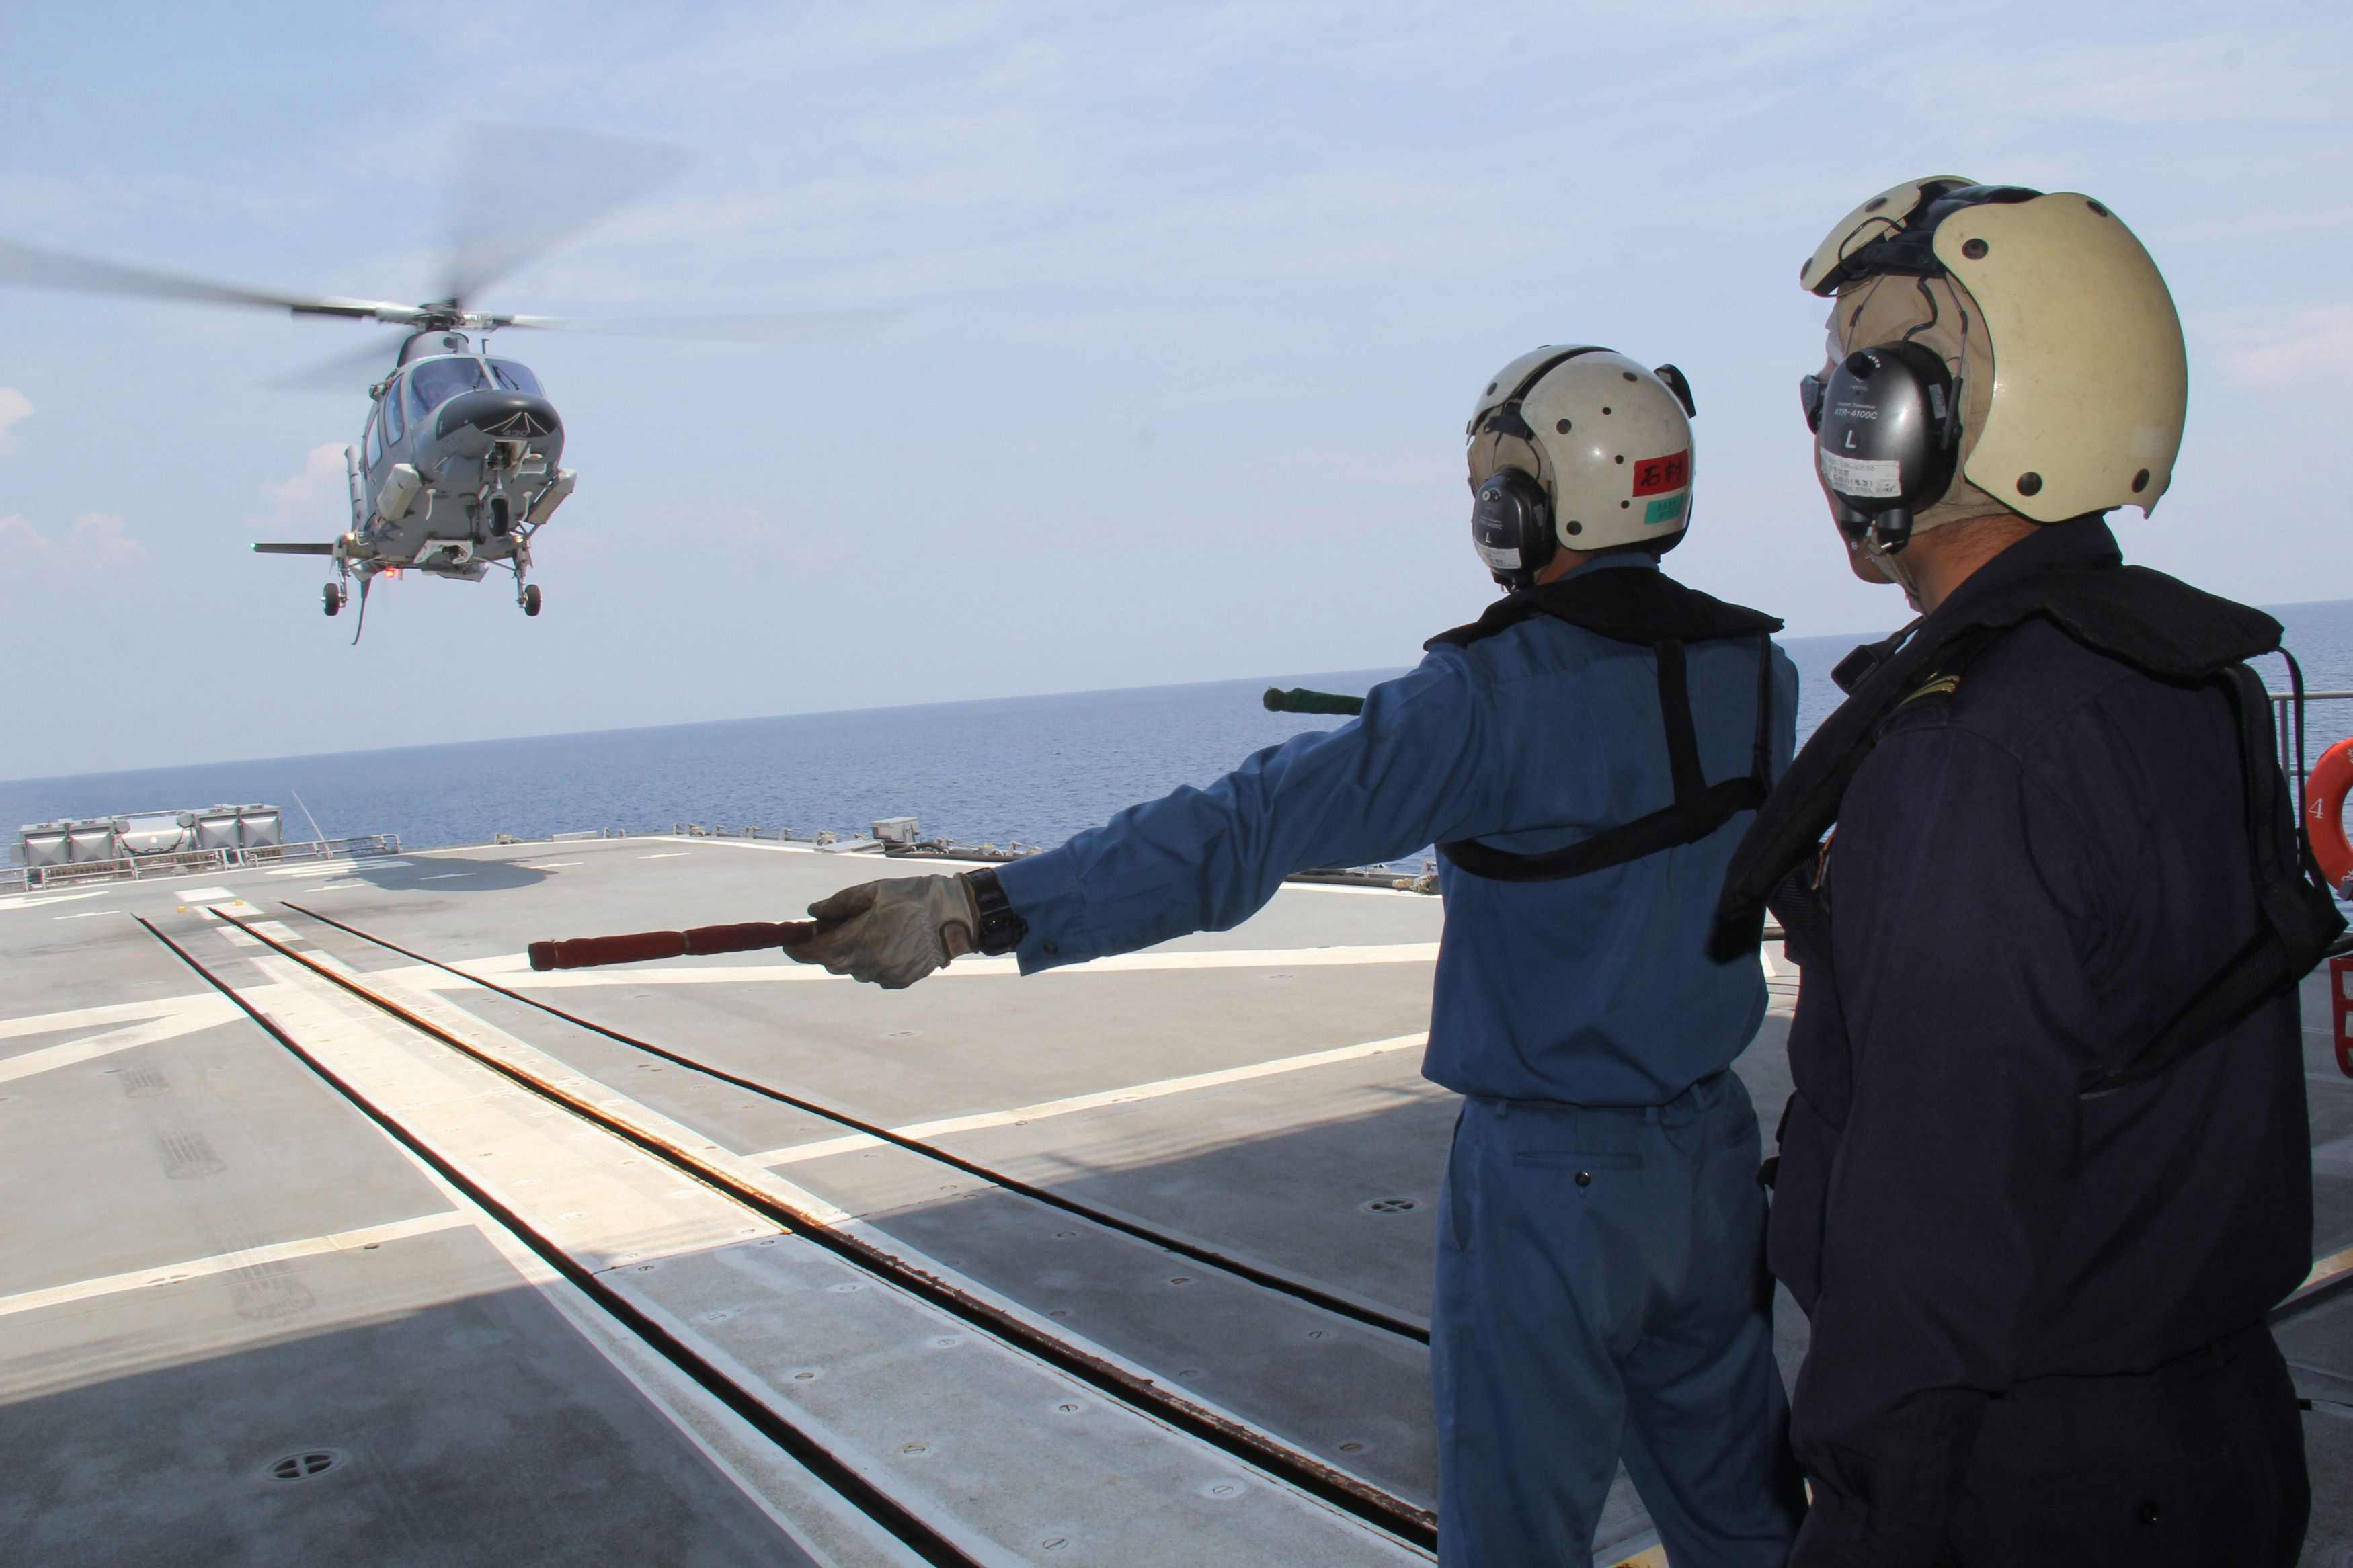 Maritime Self-Defense Force sailors guide a Philippine Navy helicopter as it lands on the deck of the destroyer Harusame during a joint naval exercise Tuesday, less than 300 km from a Philippine-claimed shoal now under Chinese control in the South China Sea. The Pentagon is considering sending U.S. military aircraft and ships to the area in an effort to assert freedom of navigation. | AFP-JIJI